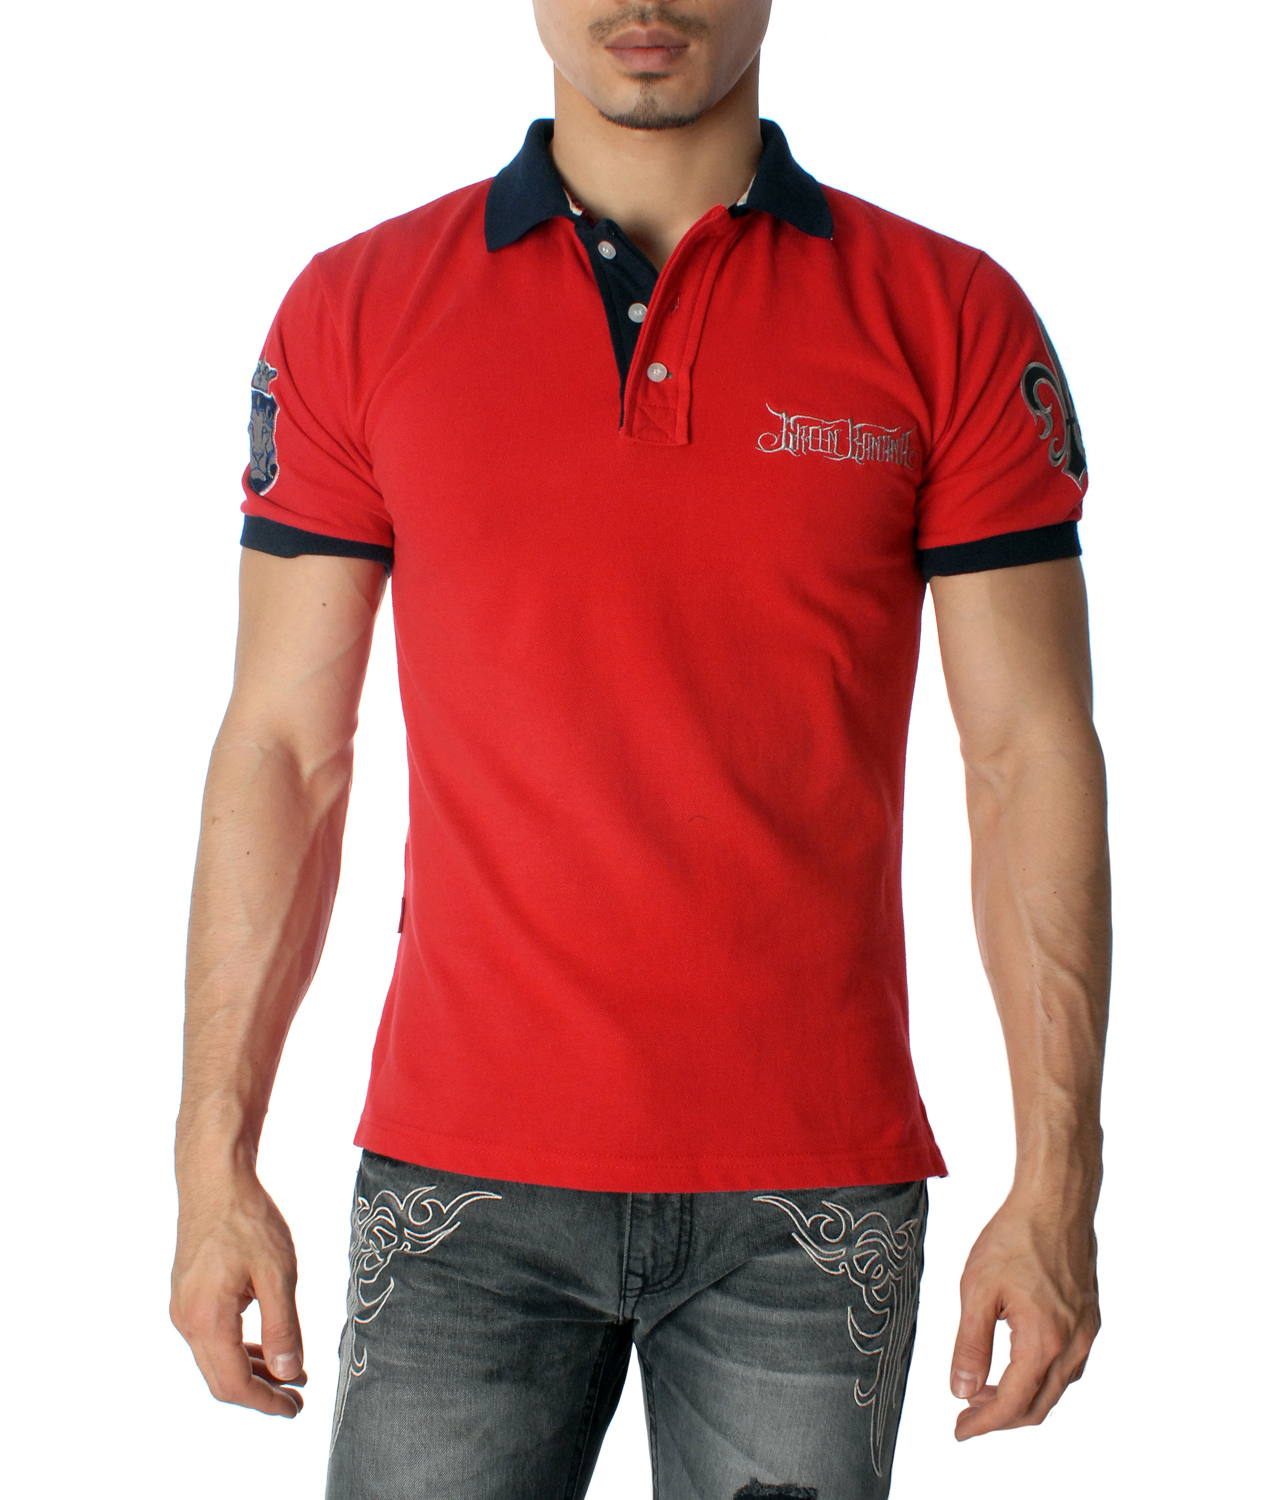 Top 15 men s summer fashion style 2016 blogrope for Design polo shirts online